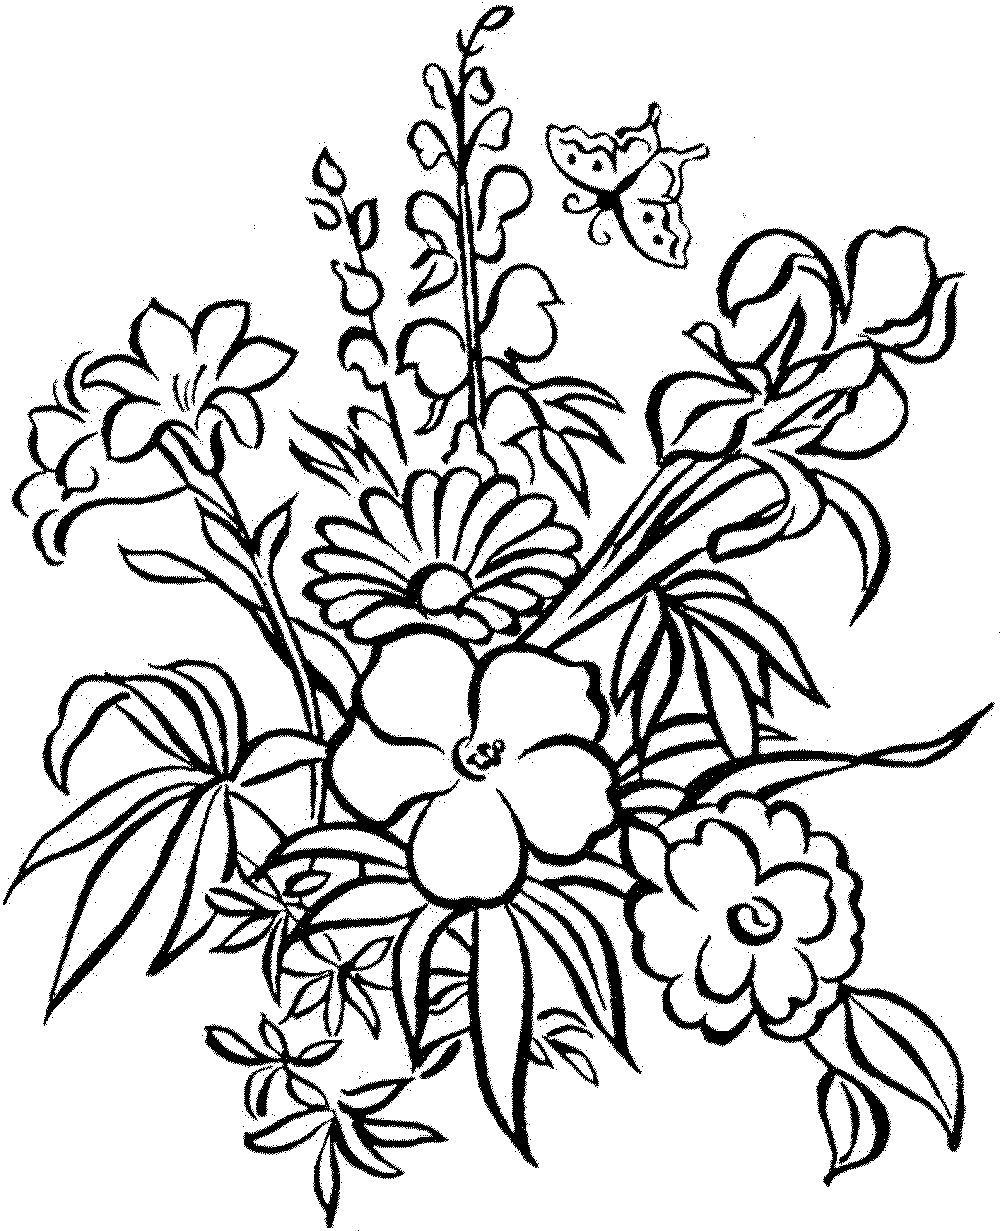 coloring pages flowers printable free easy to print flower coloring pages tulamama pages coloring printable flowers